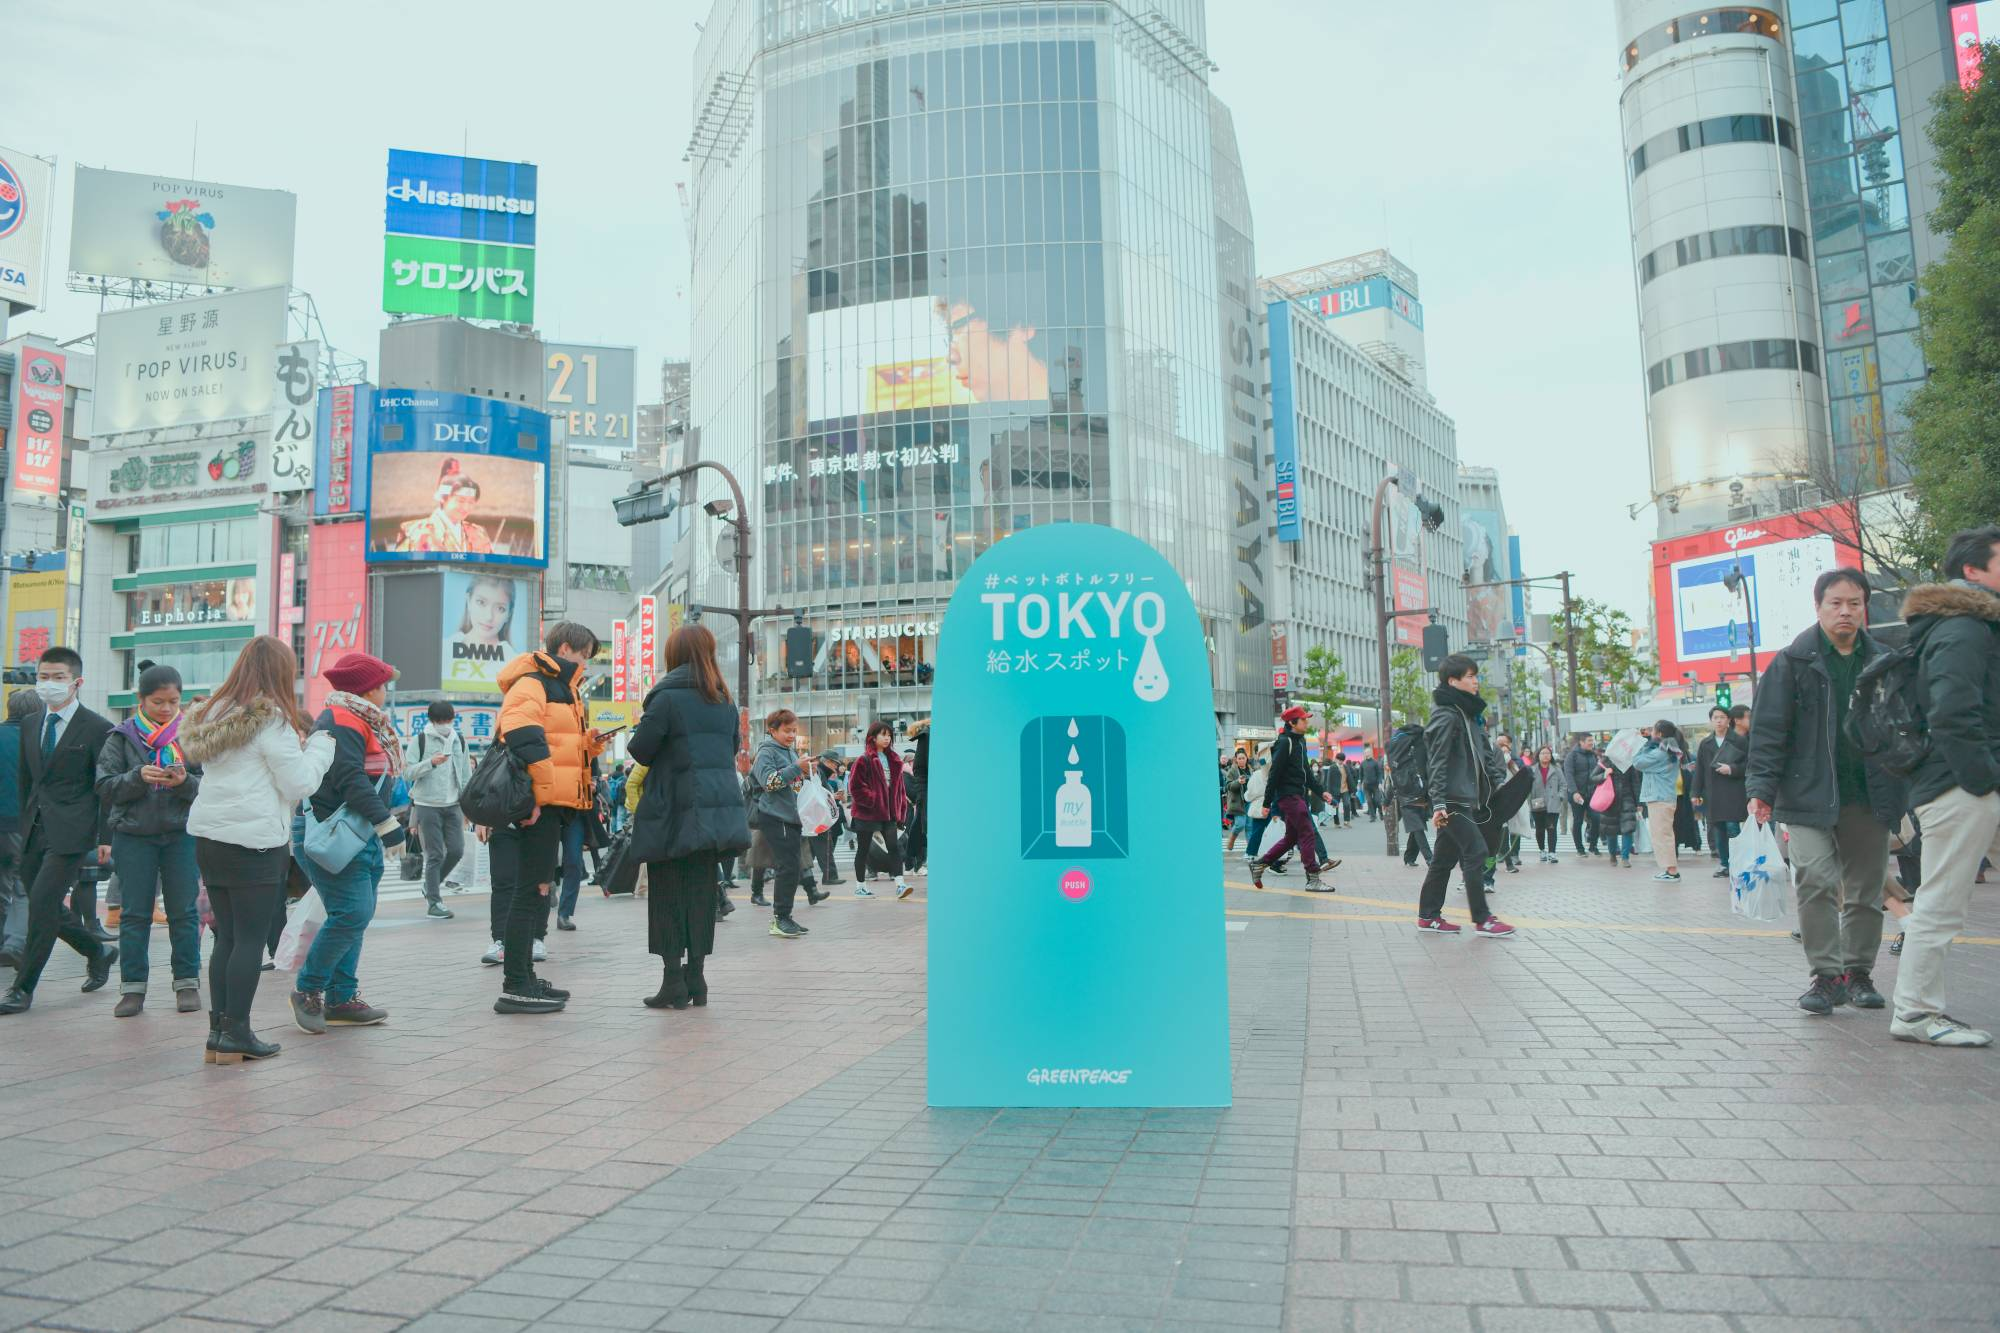 A Greenpeace Japan campaign proposing the installation of refill water stations in Tokyo to reduce consumption of single-use plastic bottles | © GREENPEACE JAPAN